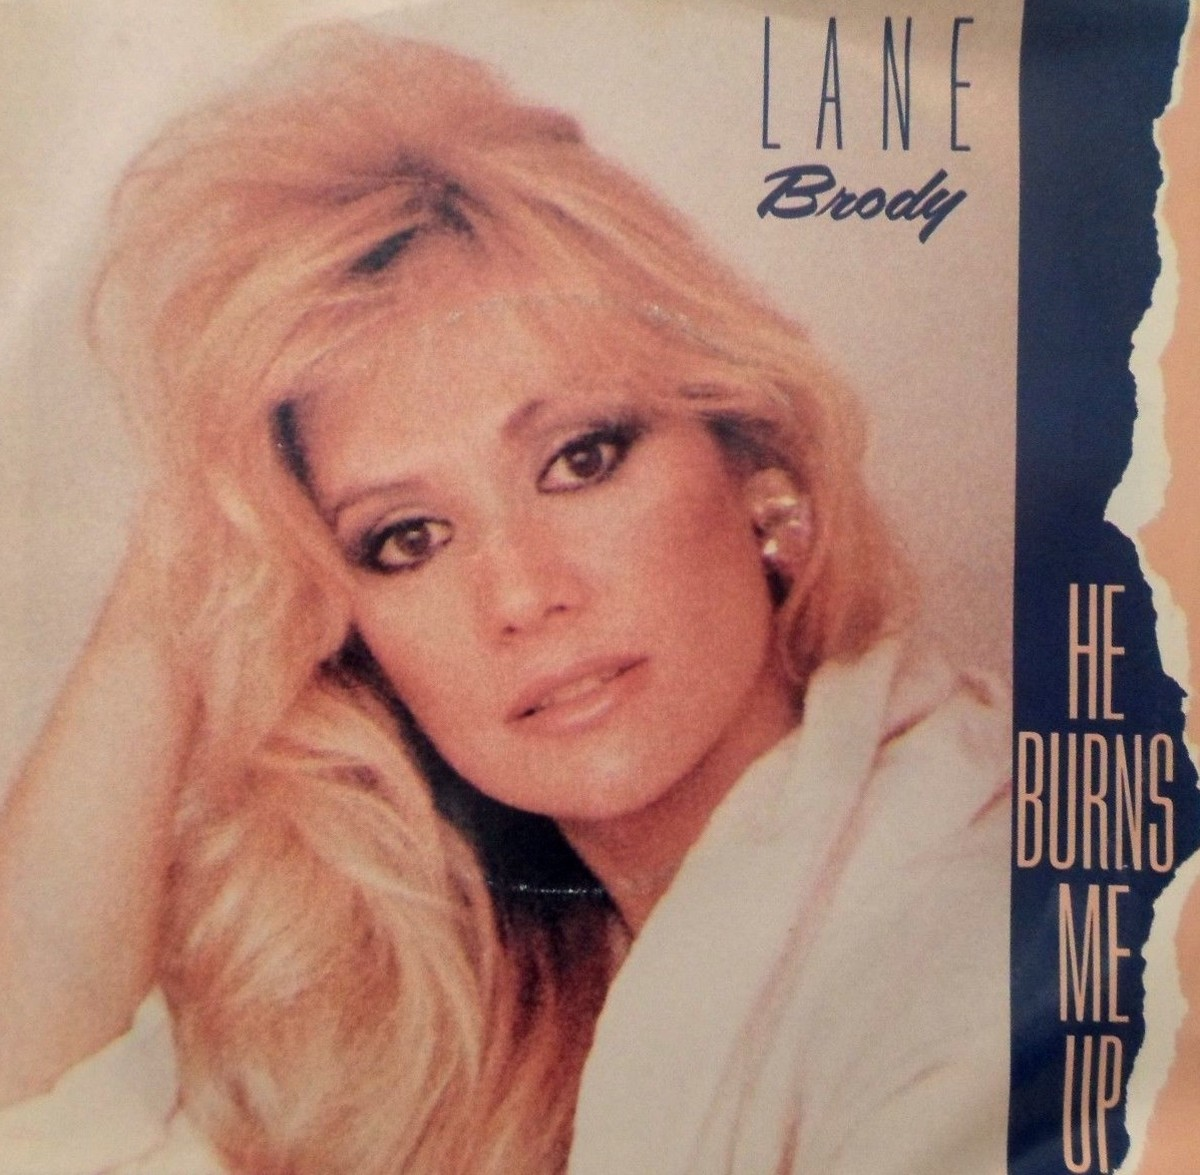 Lane on the cover of her single He Burns Me Up